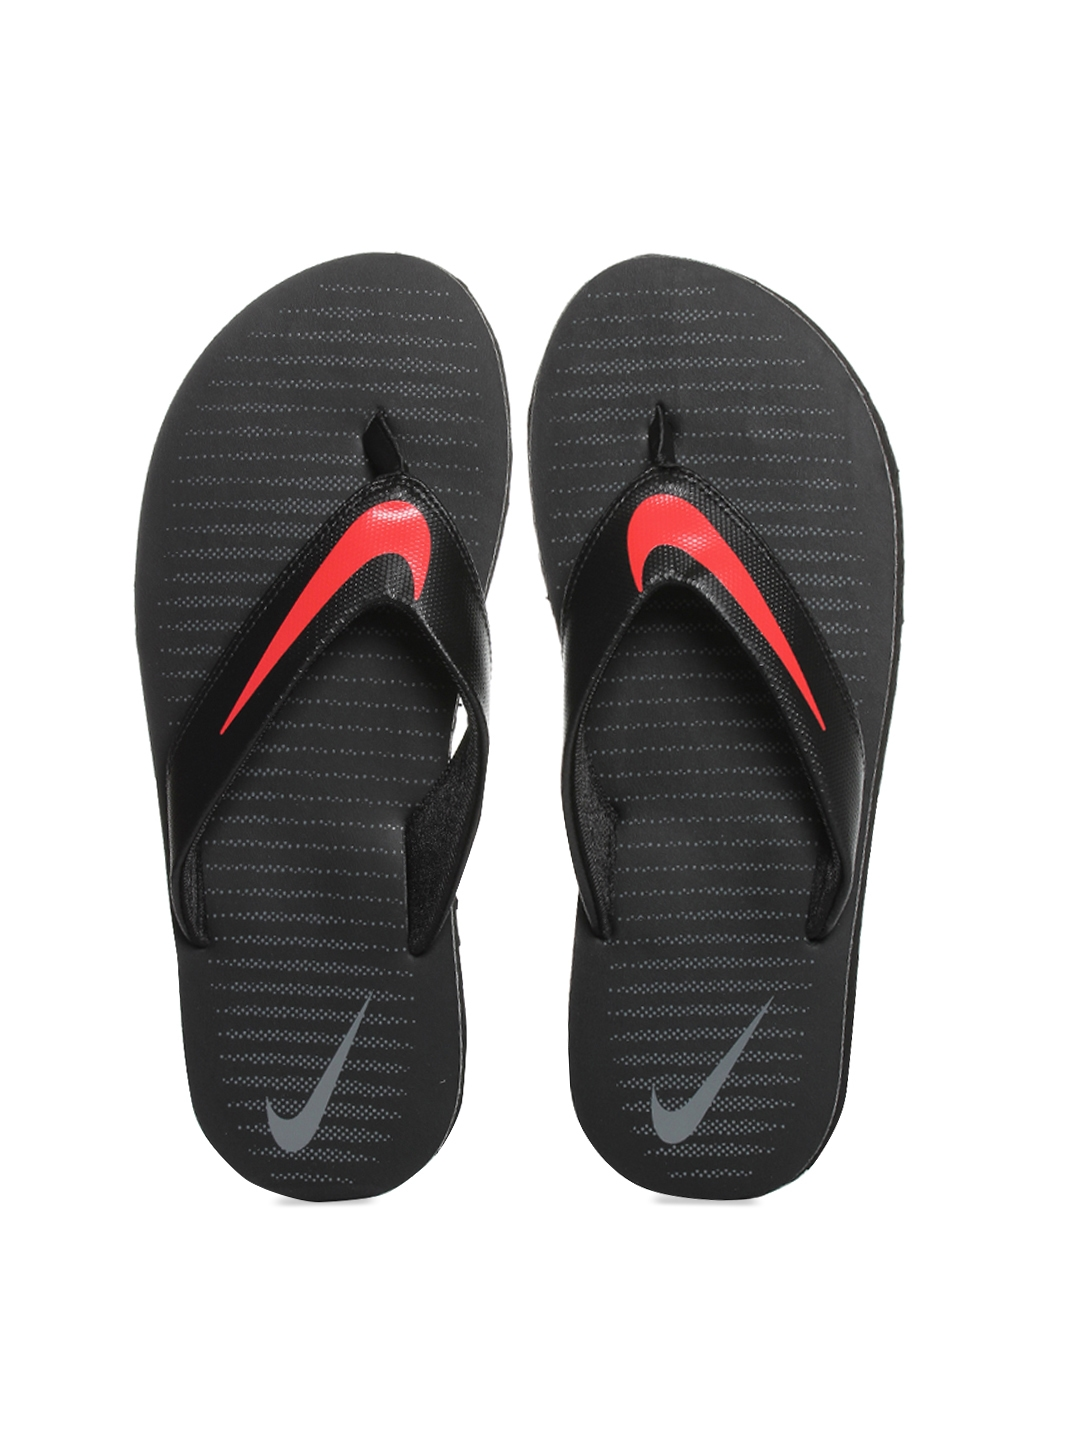 70c610408f Buy Nike Men Black Chroma Thong 5 Flip Flops - Flip Flops for Men 1547837